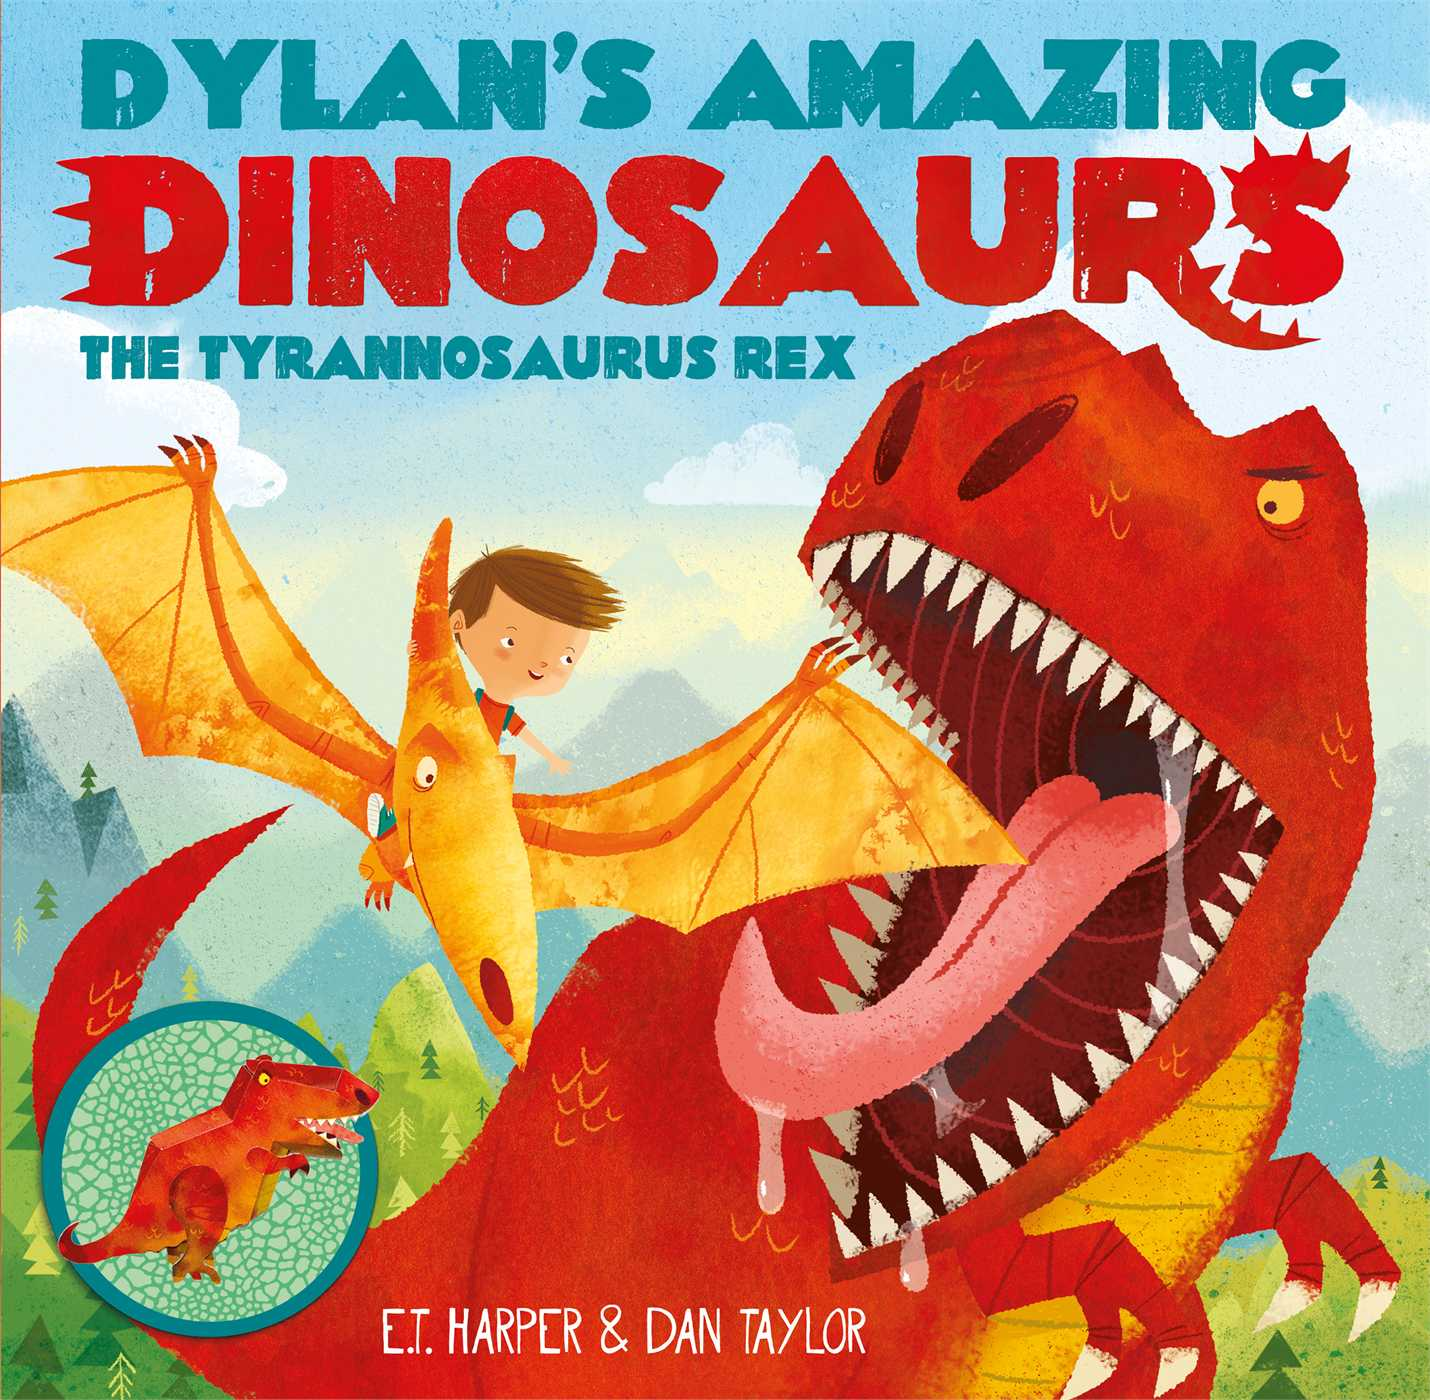 Dylans amazing dinosaurs the tyrannosaurus rex 9781471119354 hr